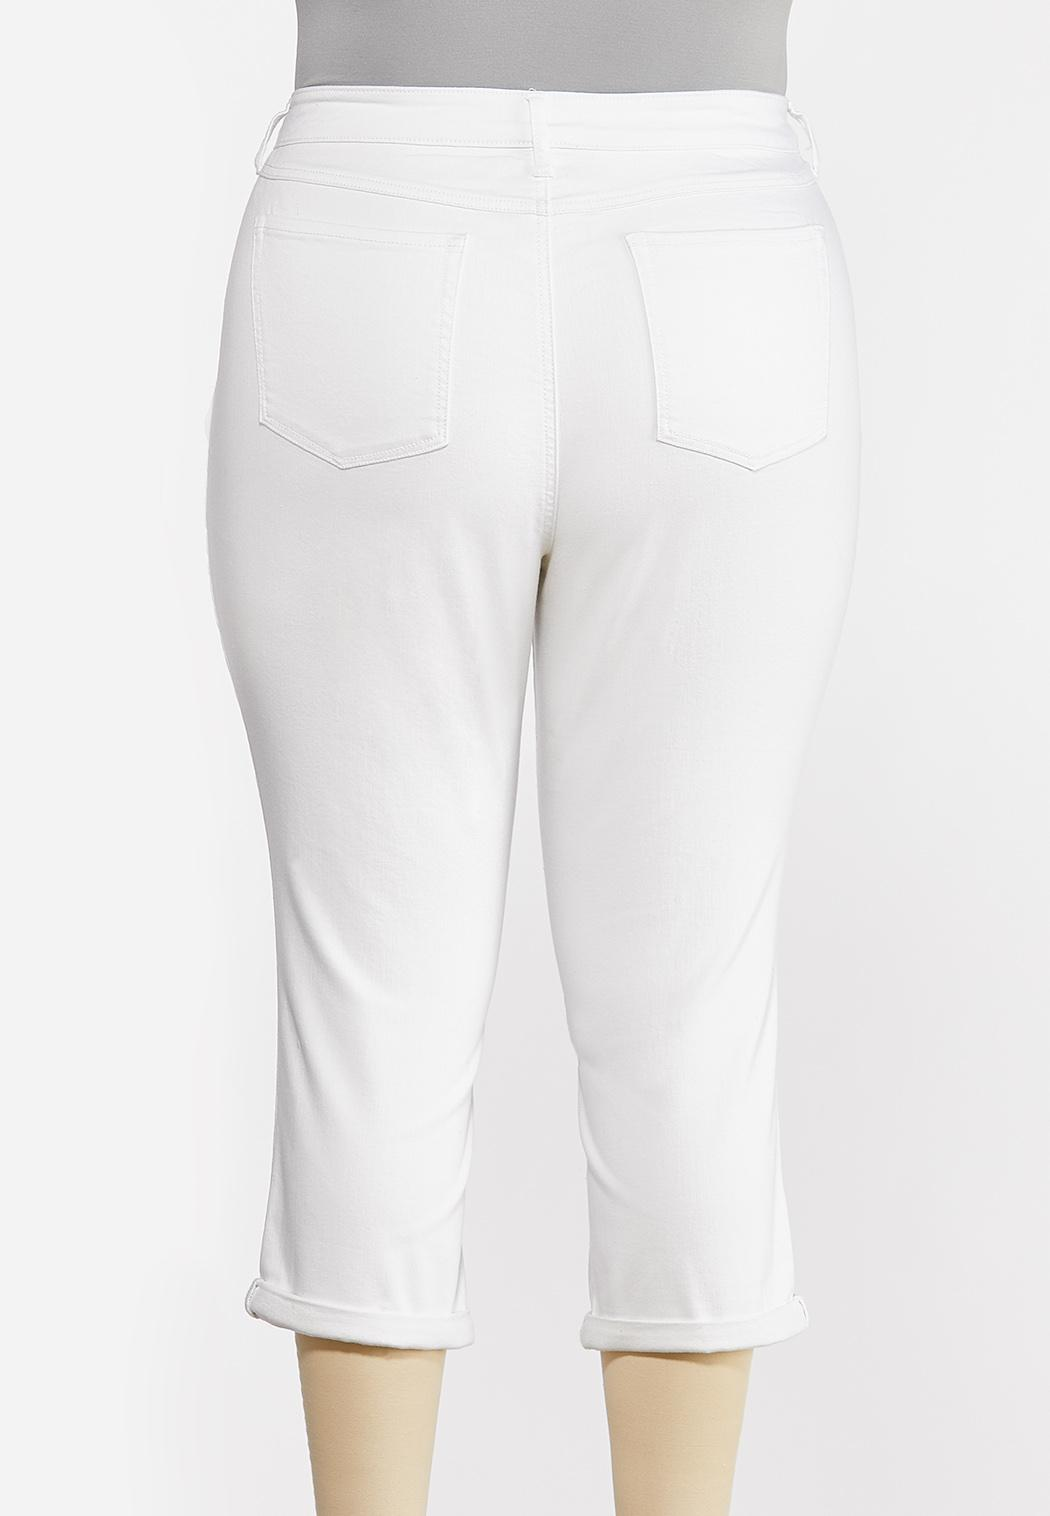 Plus Size Distressed White Cropped Jeans (Item #44242074)